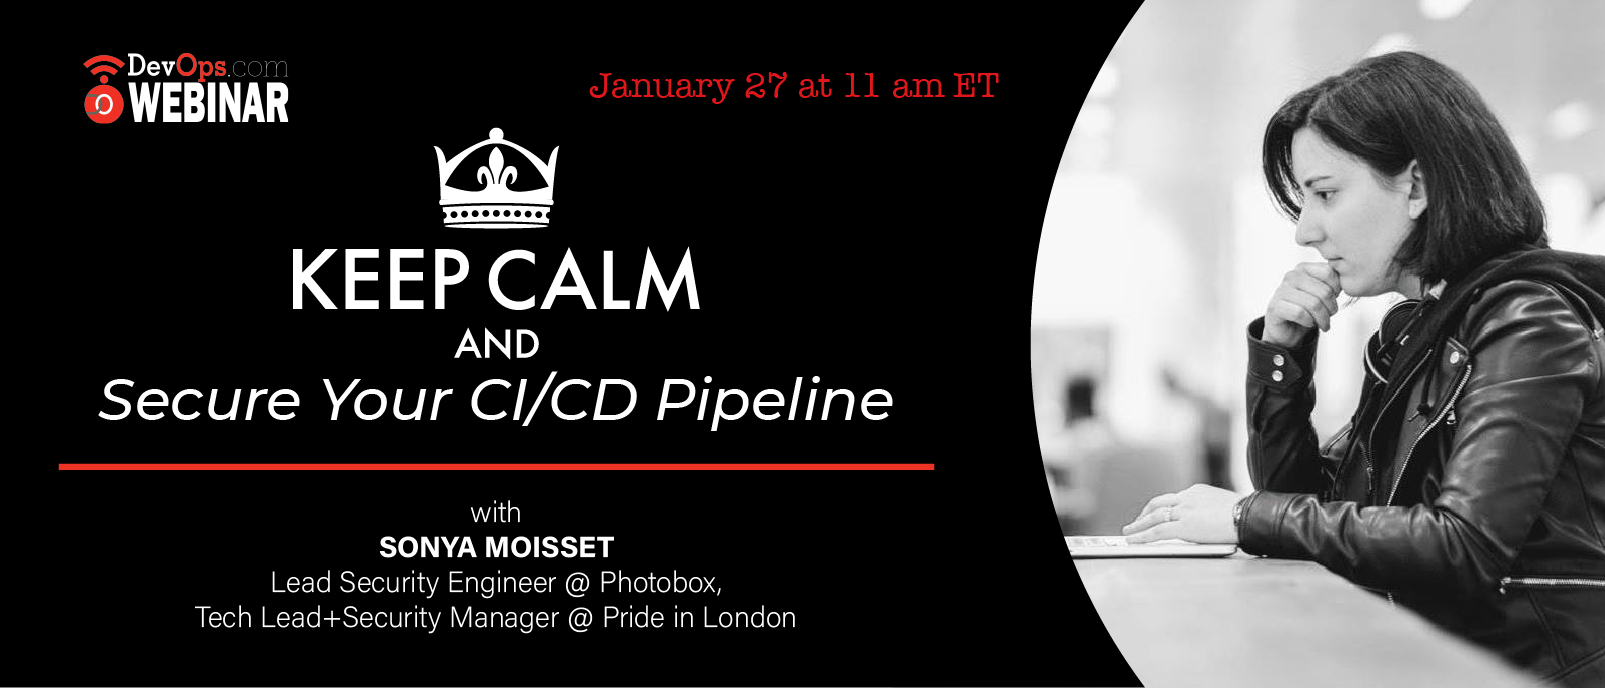 Keep Calm and Secure Your CI/CD Pipeline